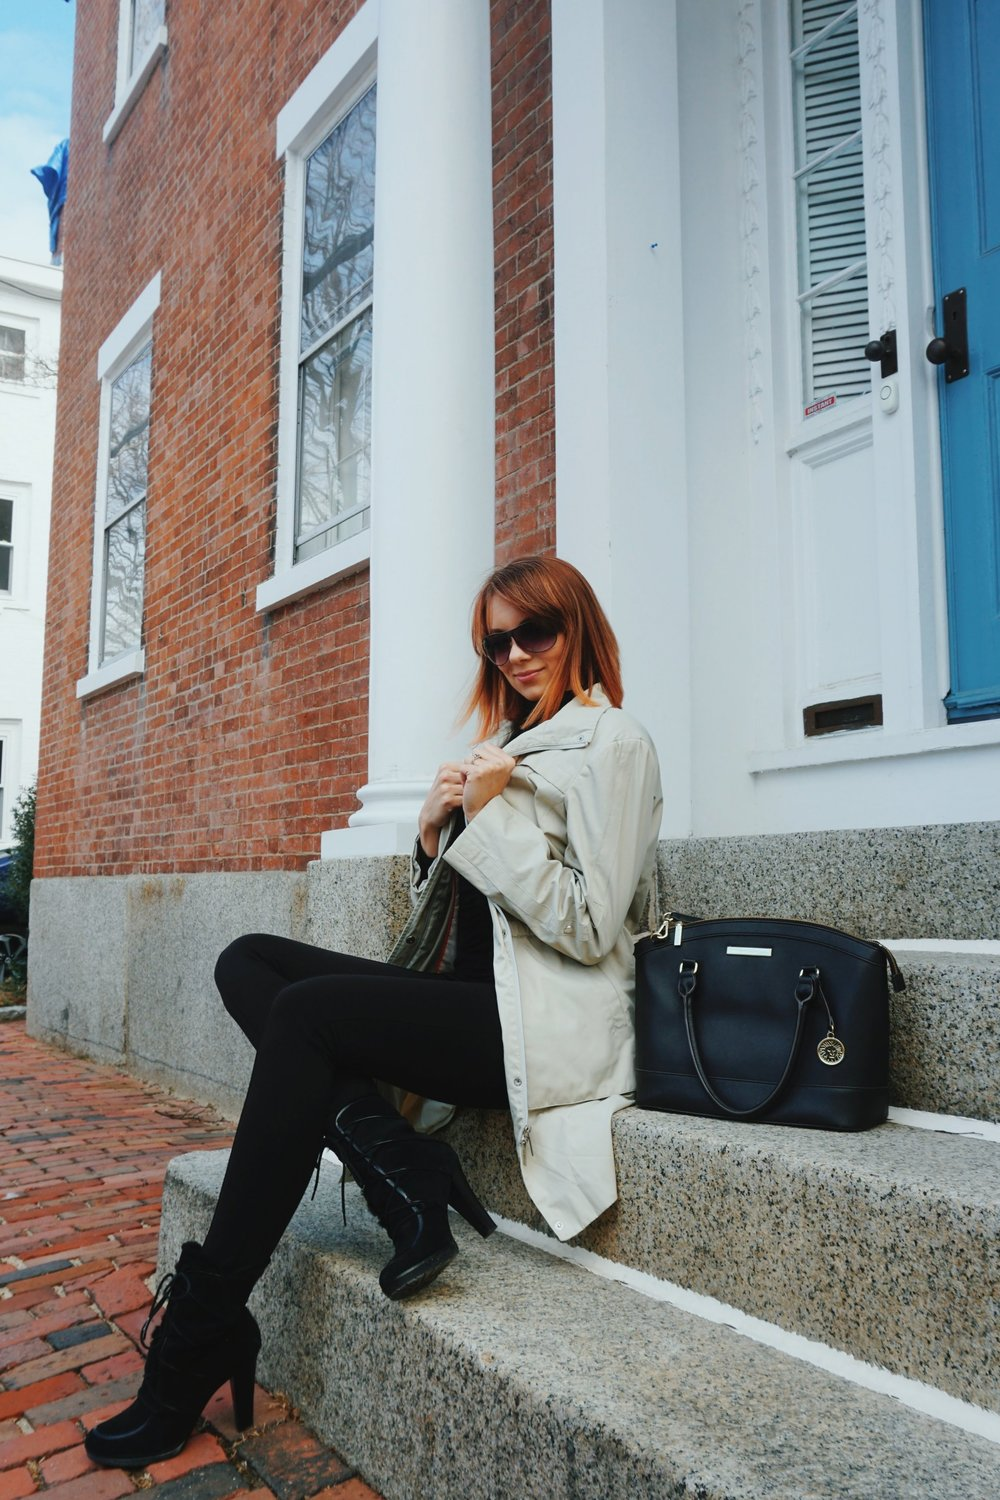 A blogger sitting on the steps in front of a Boston house, wearing an all-black outfit and a nude trench coat.